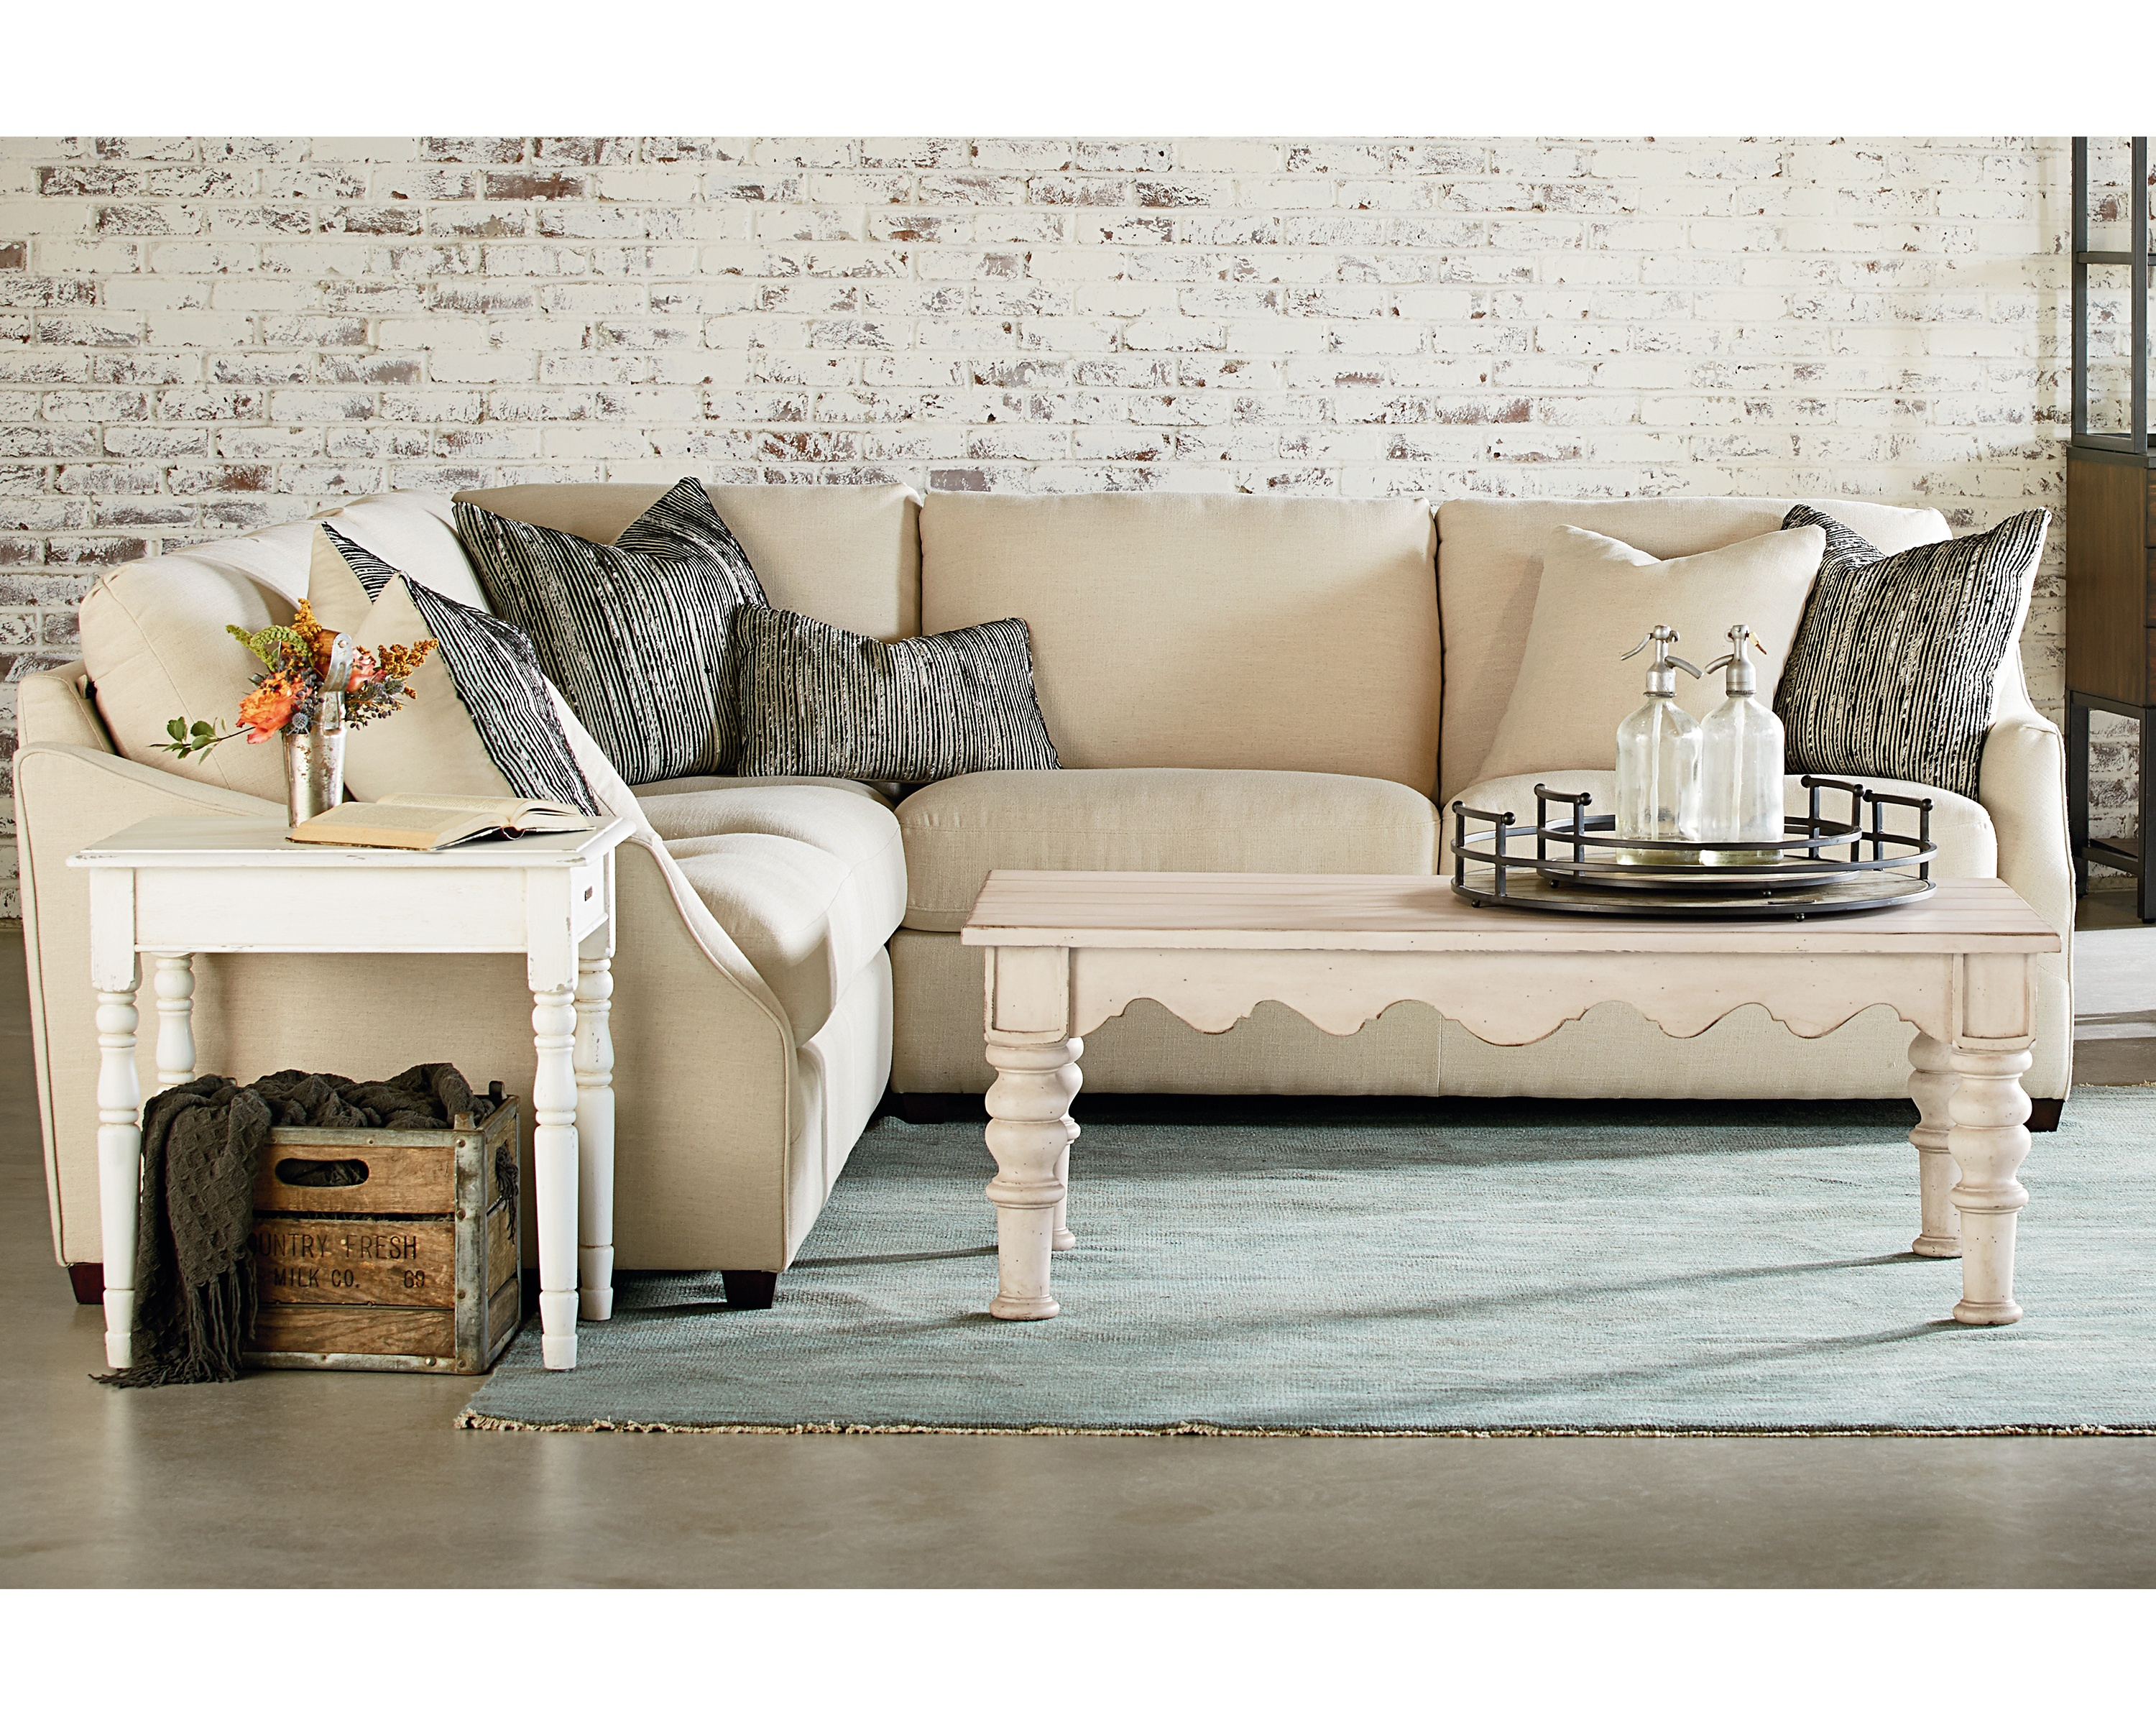 Homestead Sectional – Magnolia Home Inside Magnolia Home Homestead Sofa Chairs By Joanna Gaines (Photo 6 of 25)